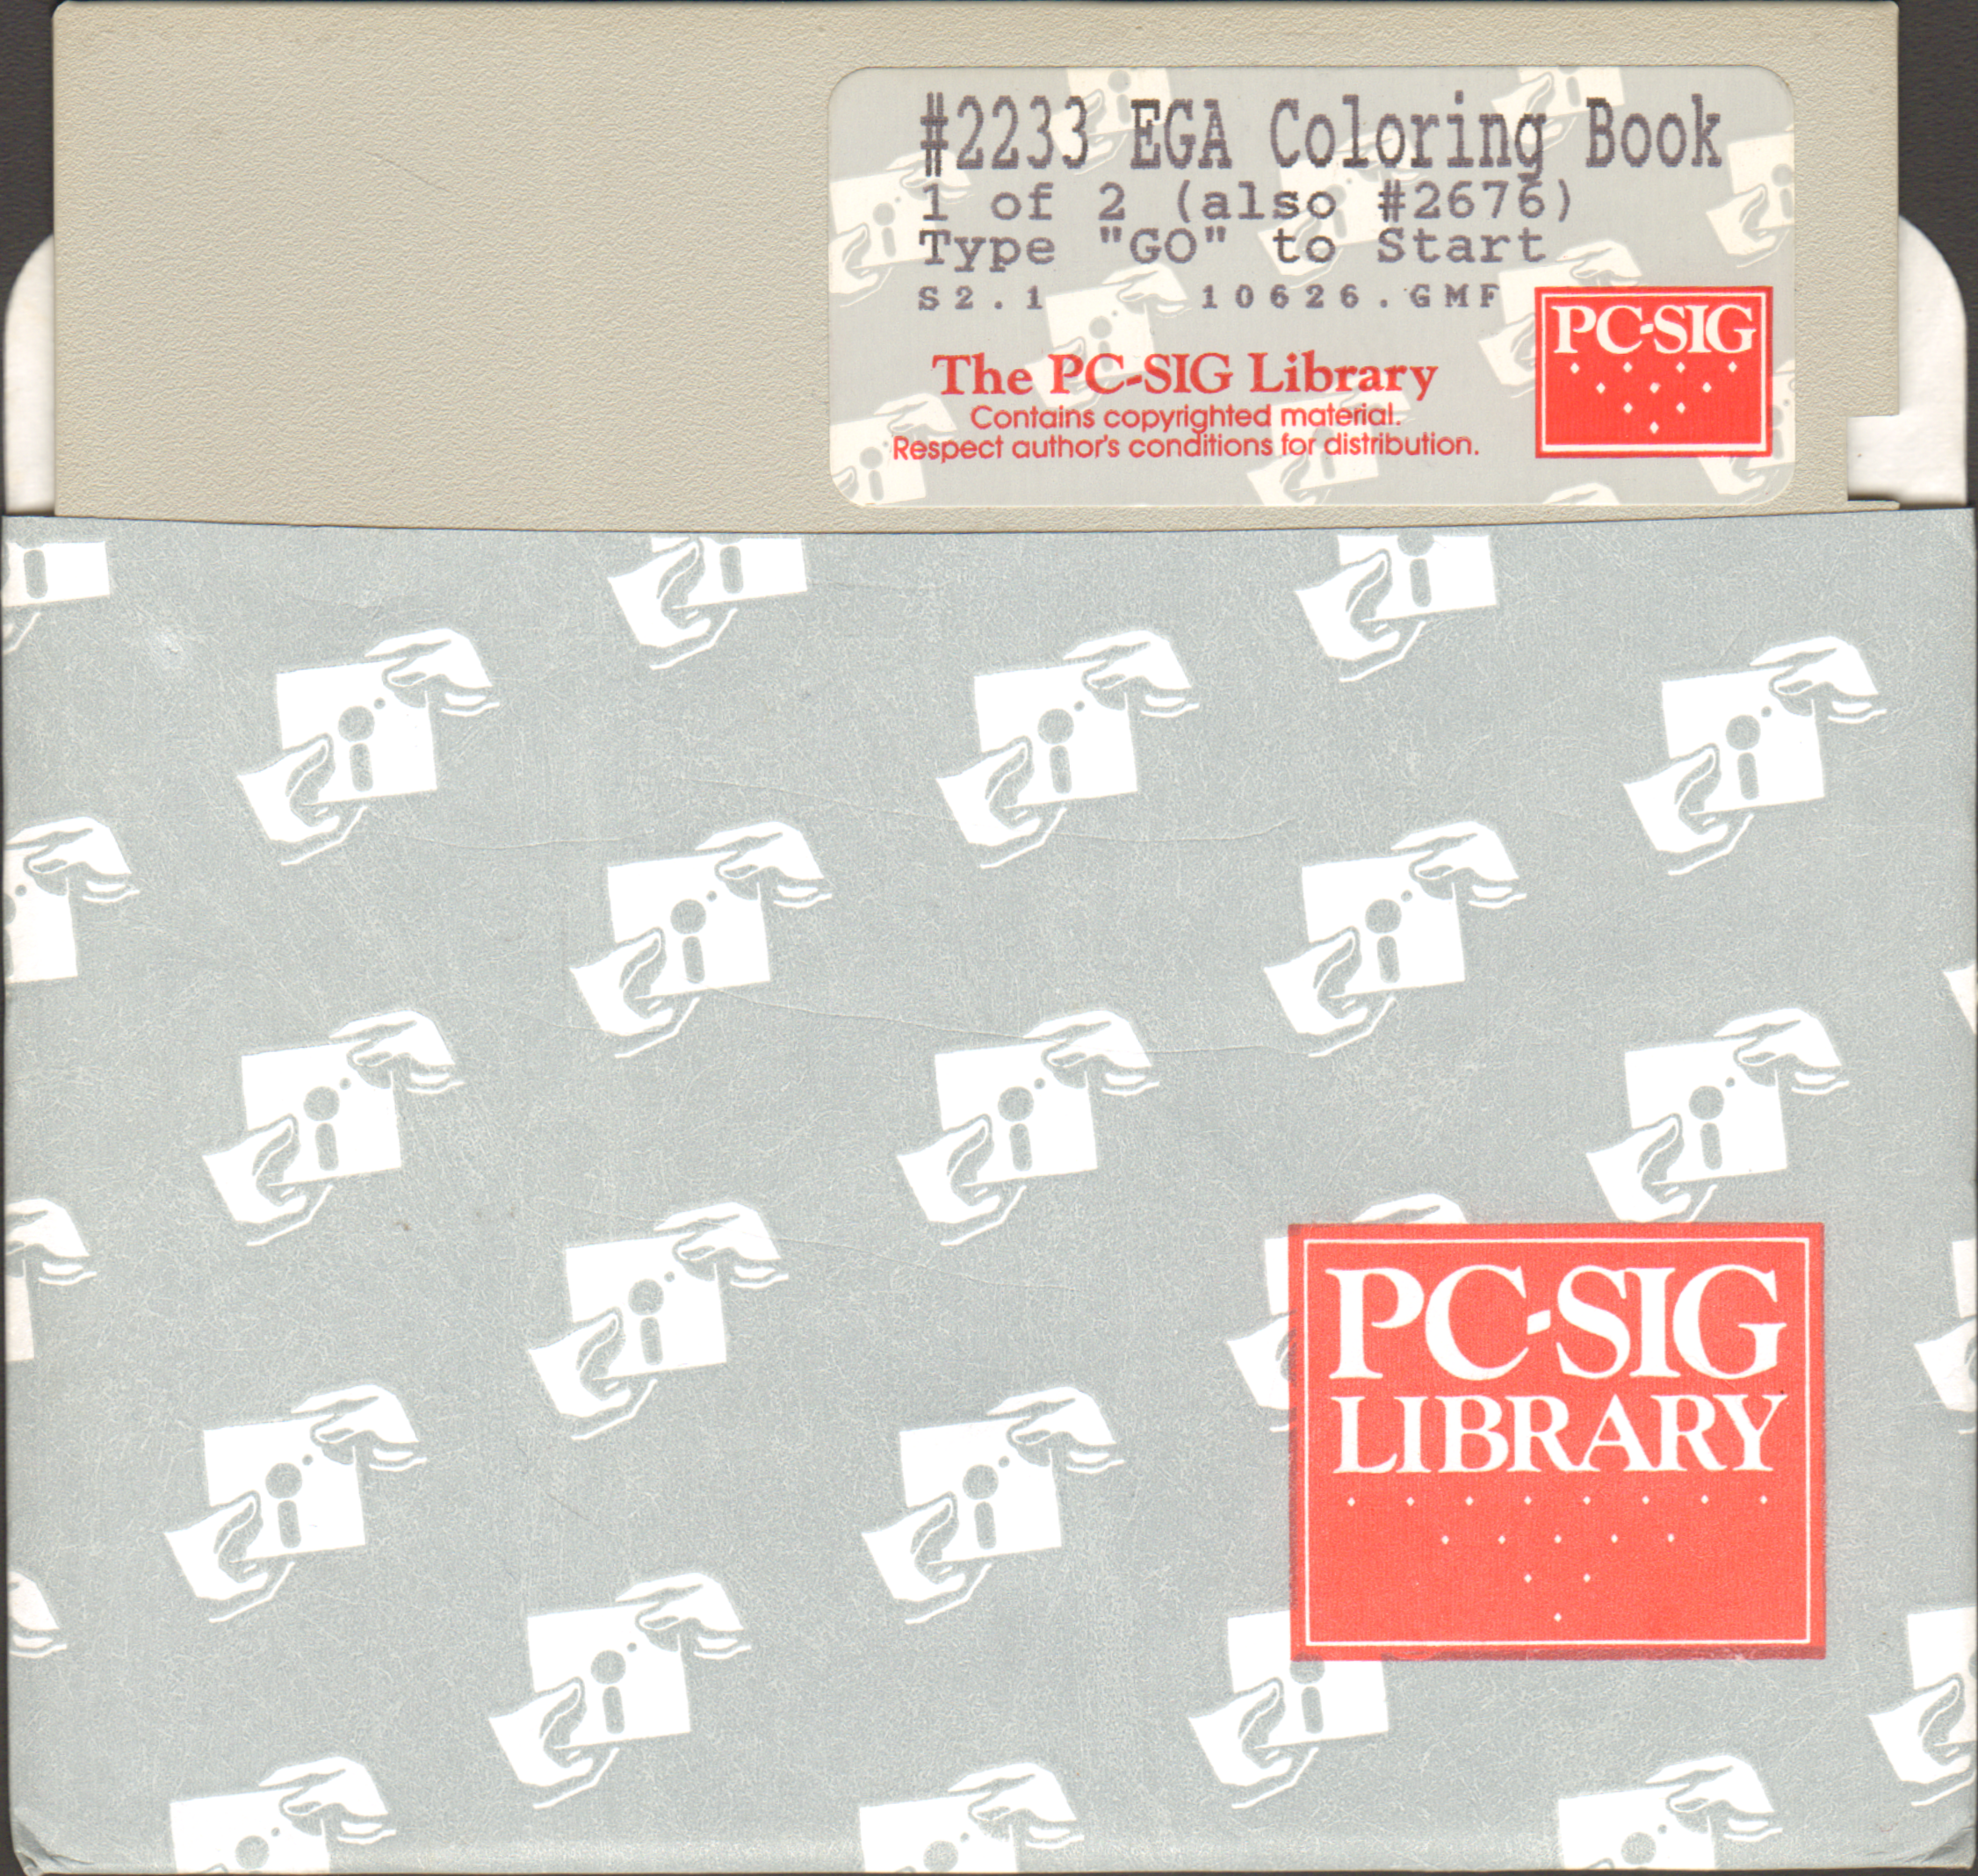 PC-SIG Library - #2233 EGA Coloring Book (1 of 2) : PC-SIG ...